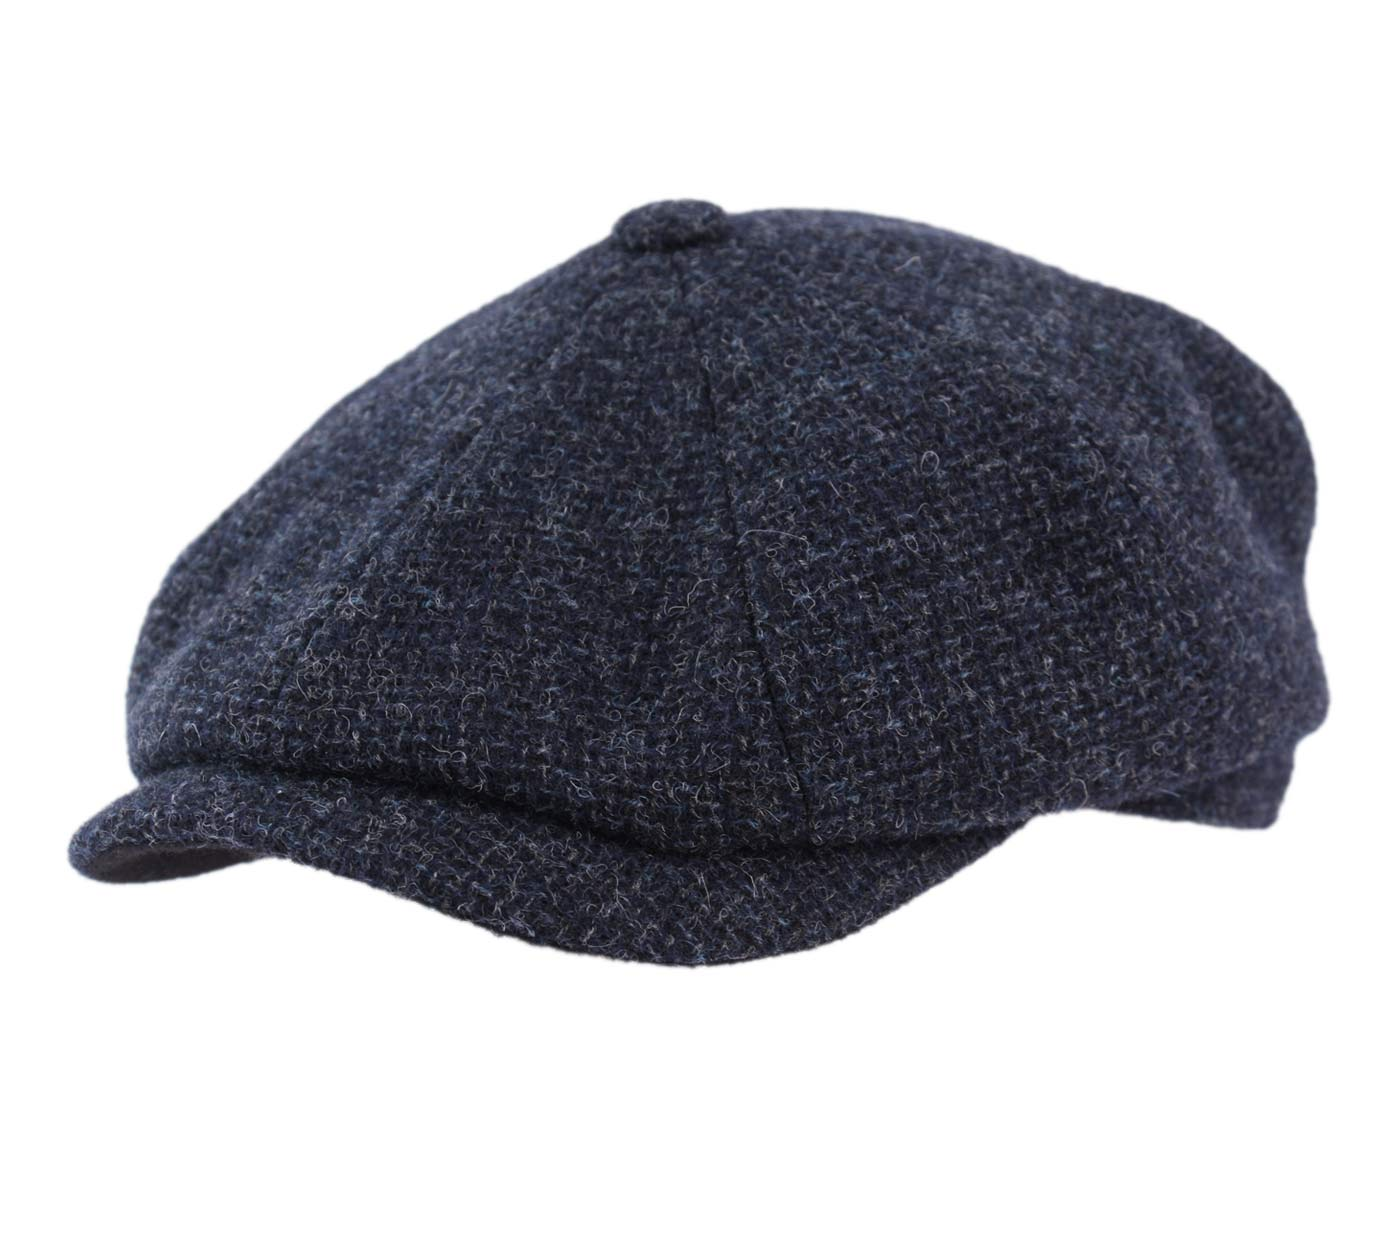 8-panel Wool - Caps Stetson 59767ce5f41